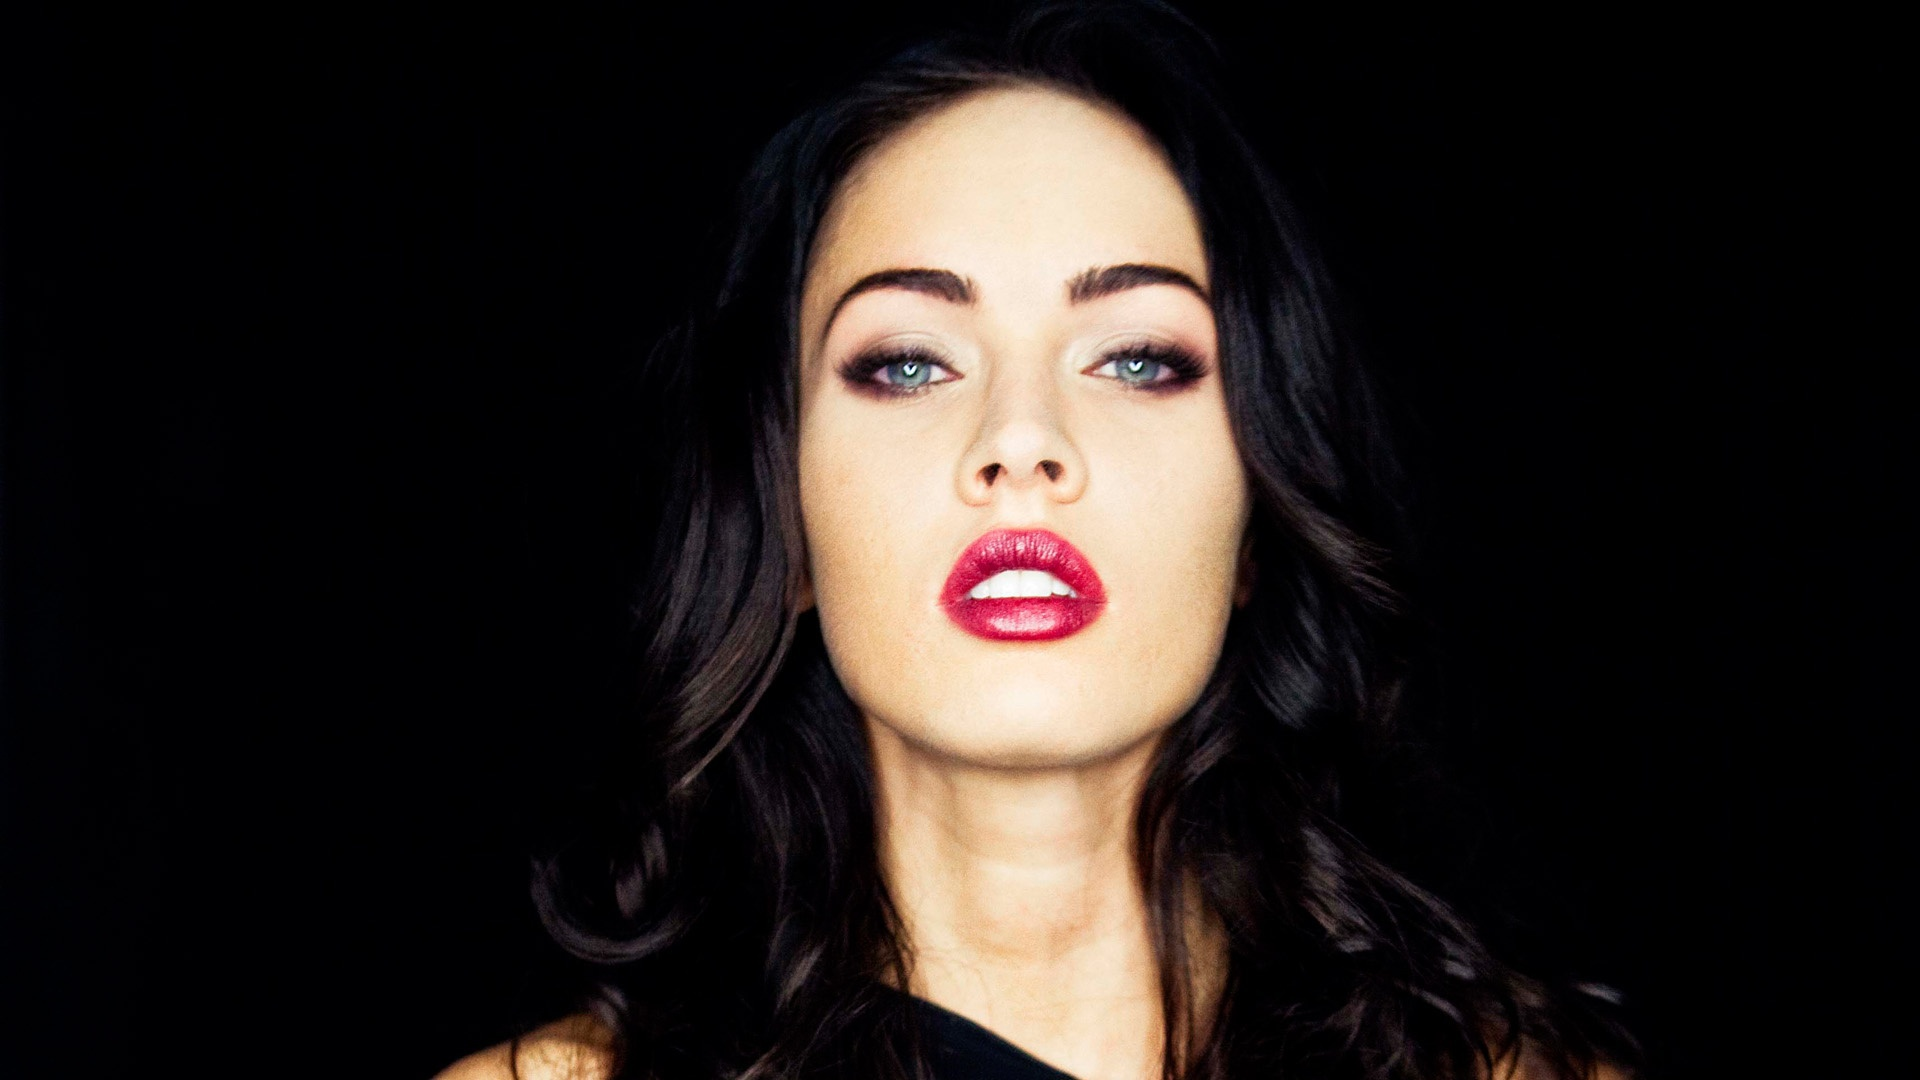 Megan Fox Wallpaper For Windows